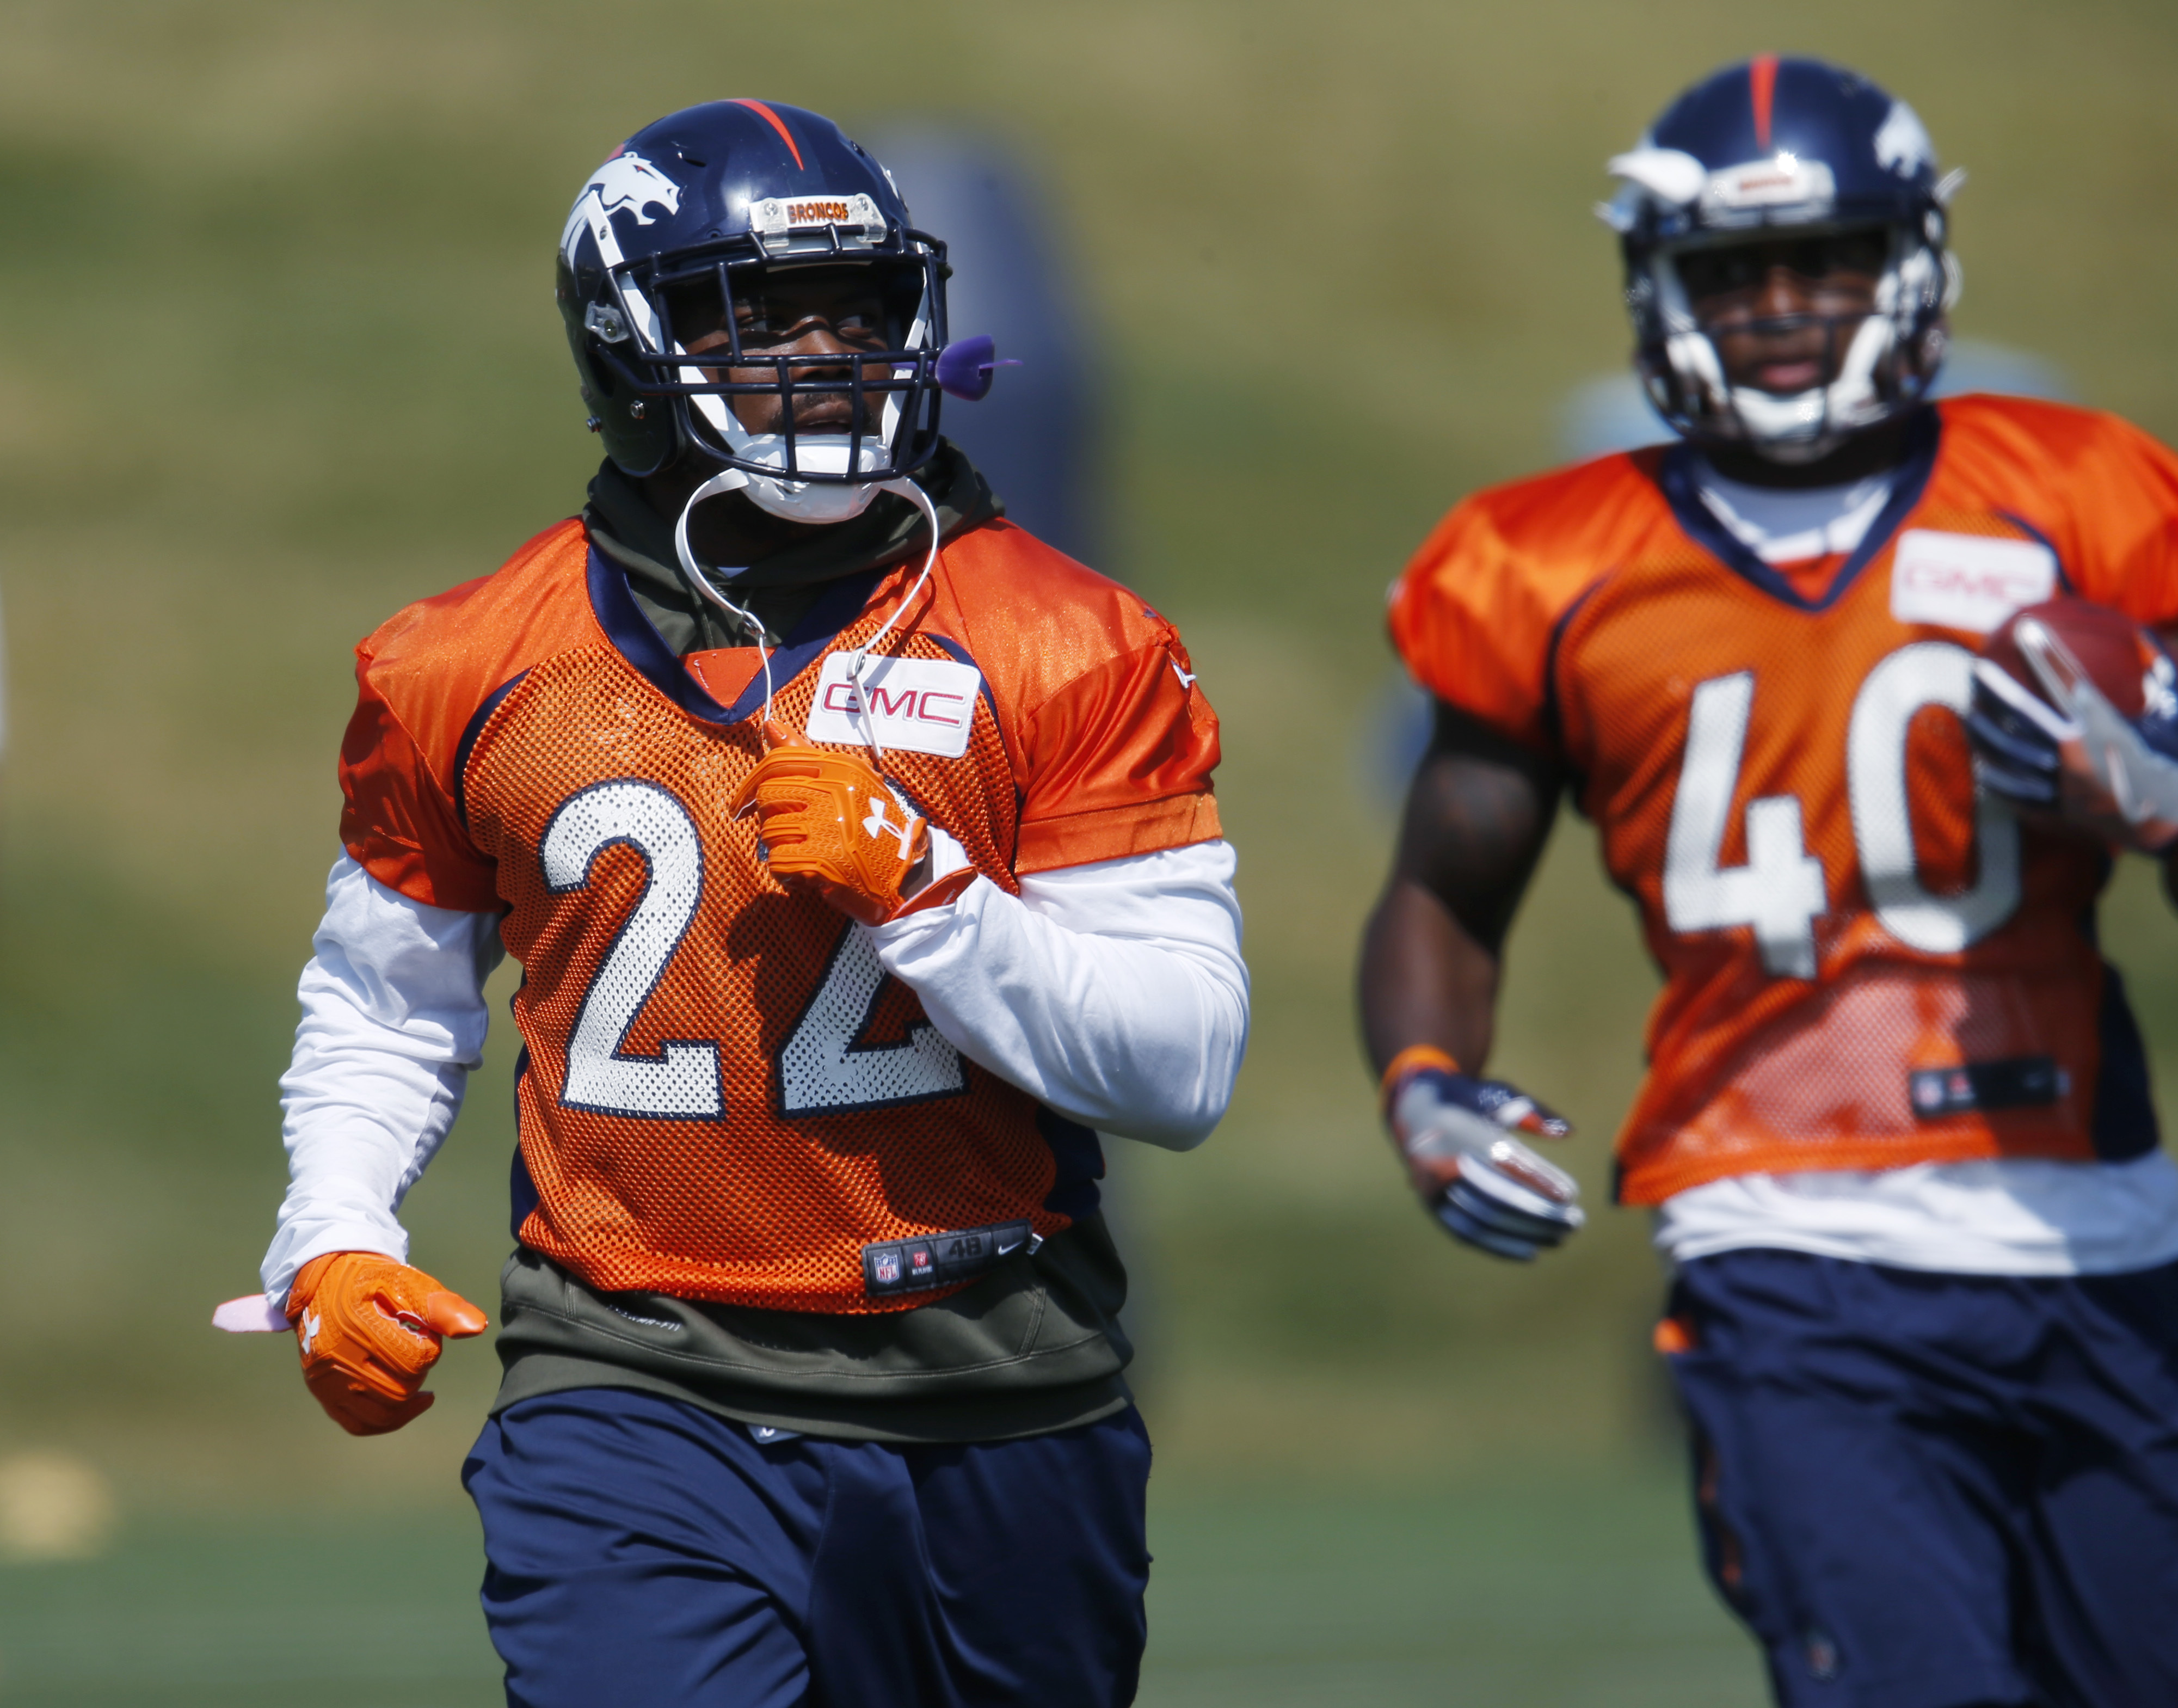 Denver Broncos running backs C.J. Anderson, front, and Juwan Thompson take part in drills during the team's NFL football practice at the Broncos' headquarters on Thursday, Aug. 25, 2016, in Englewood, Colo. (AP Photo/David Zalubowski)